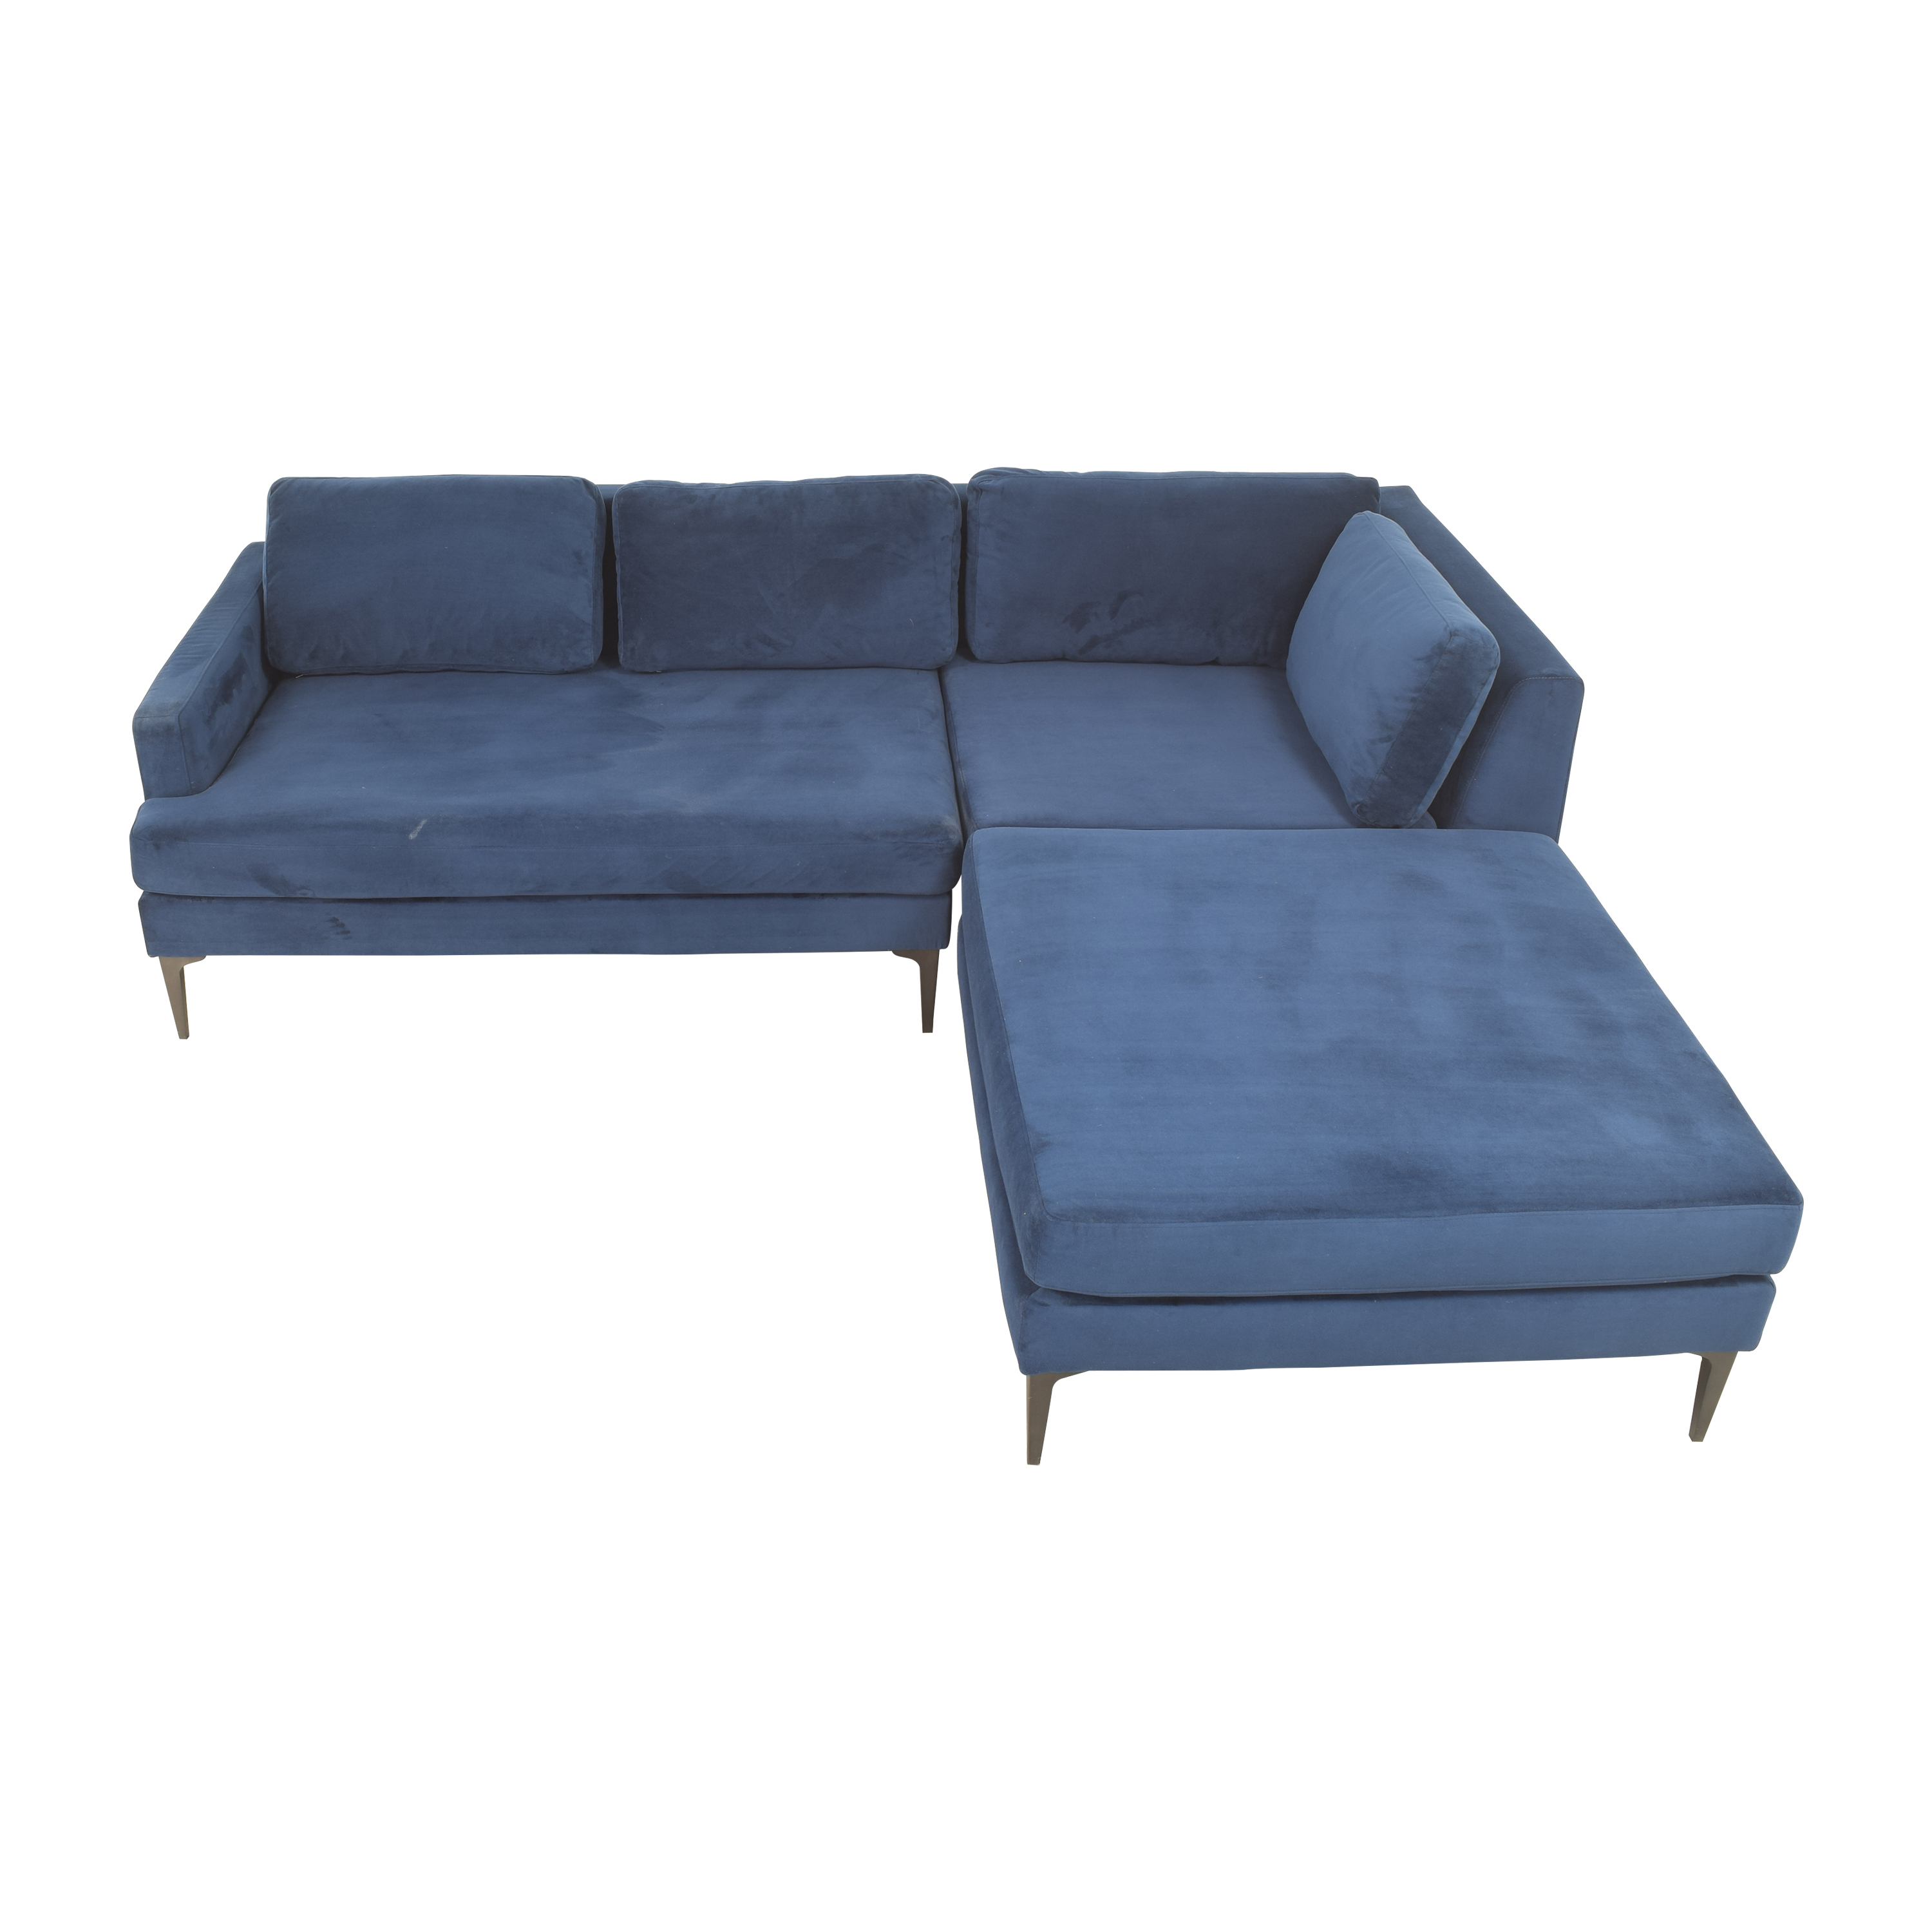 West Elm West Elm Andes 3-Piece Chaise Sectional coupon